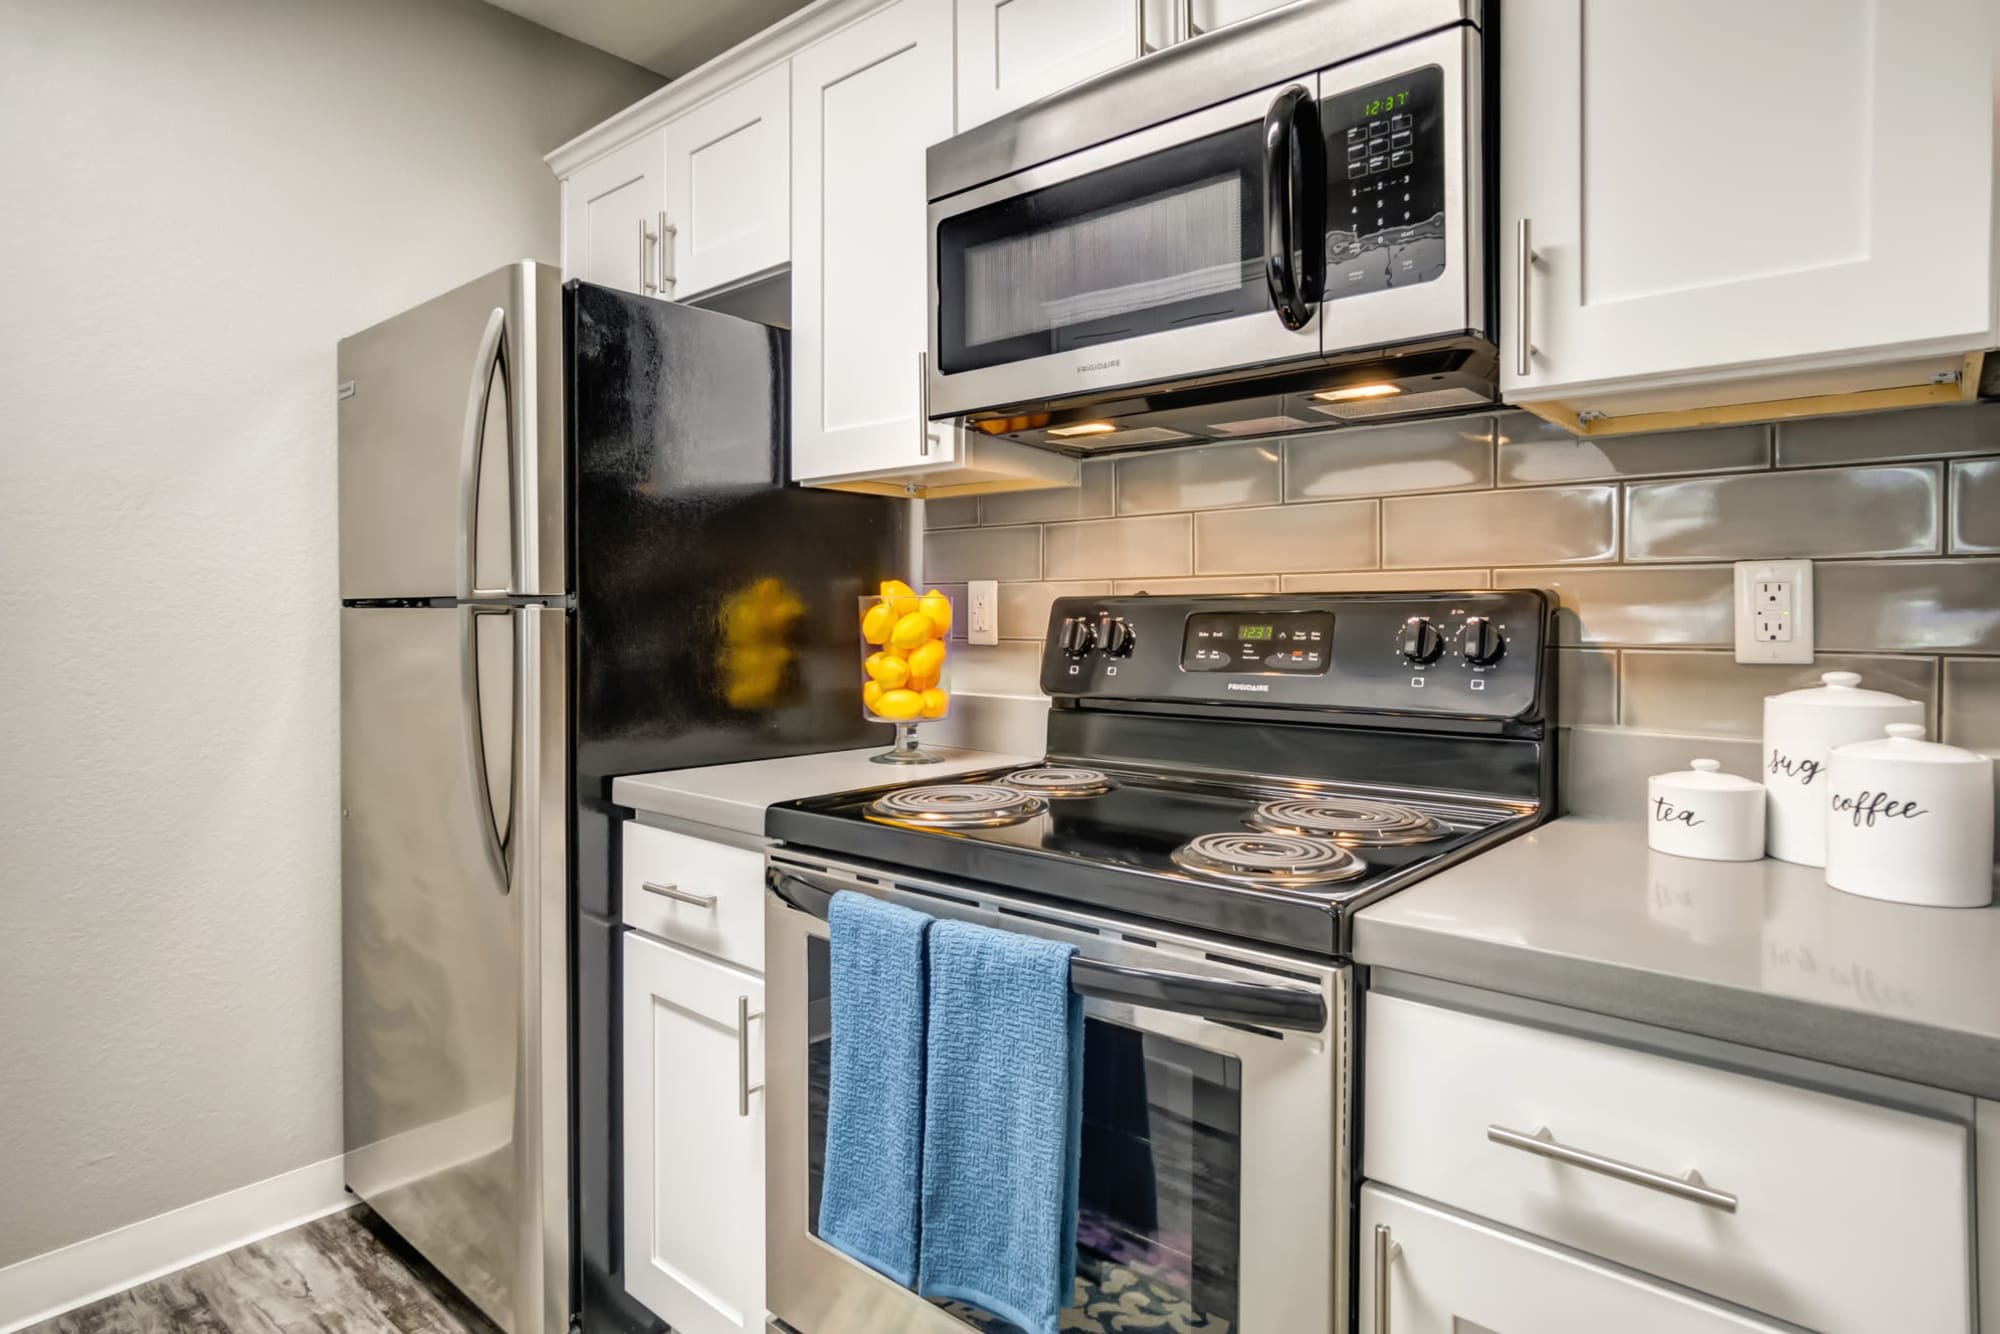 Renovated White Cabinetry Kitchen with Stainless Steel Appliances at Serramonte Ridge Apartment Homes